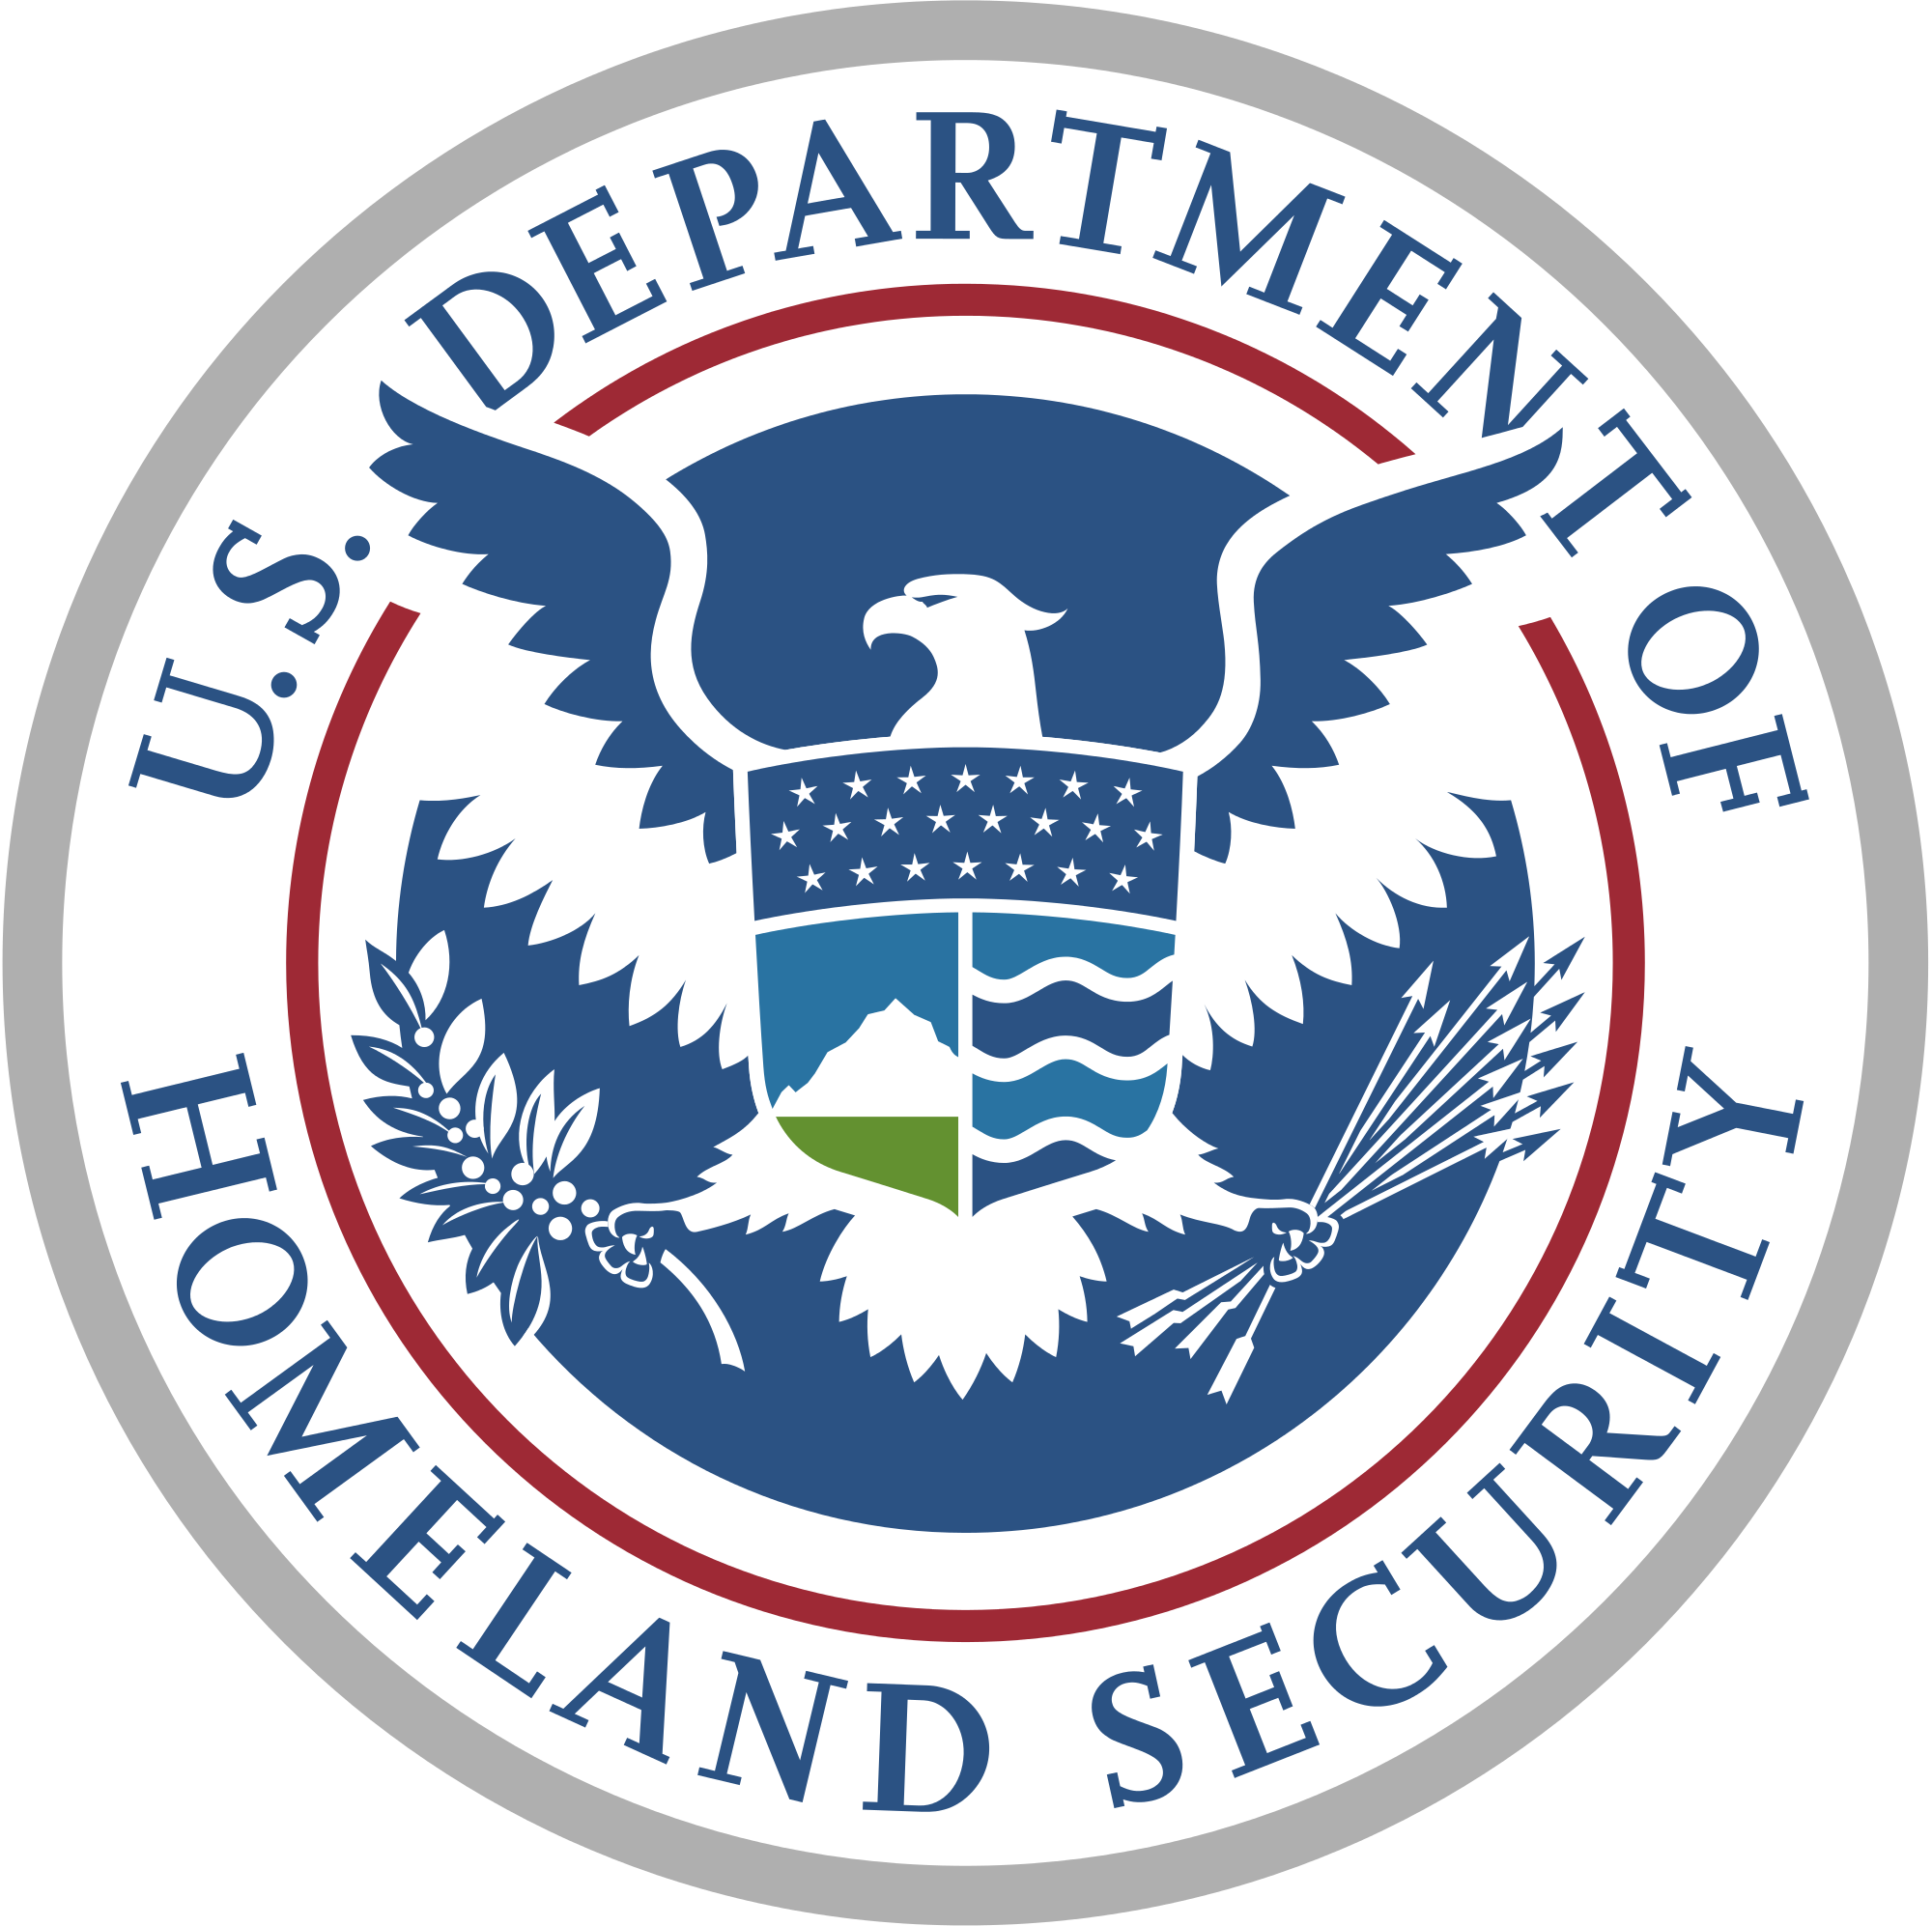 New members appointed to Homeland Security Advisory Council